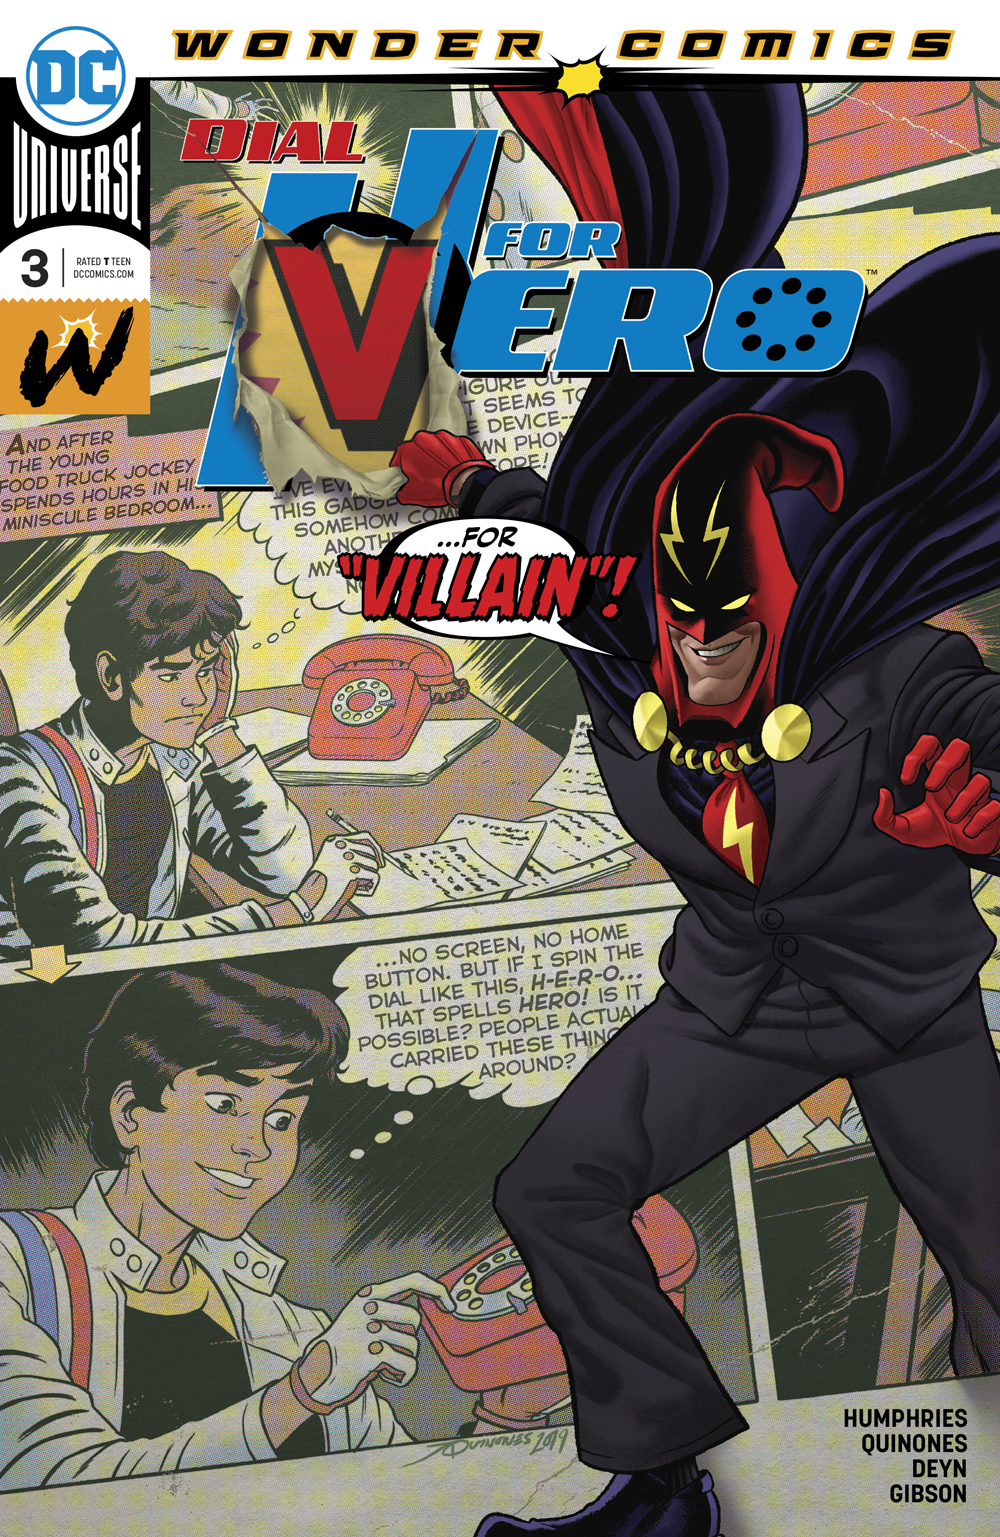 DIAL H FOR HERO #3 (OF 6)